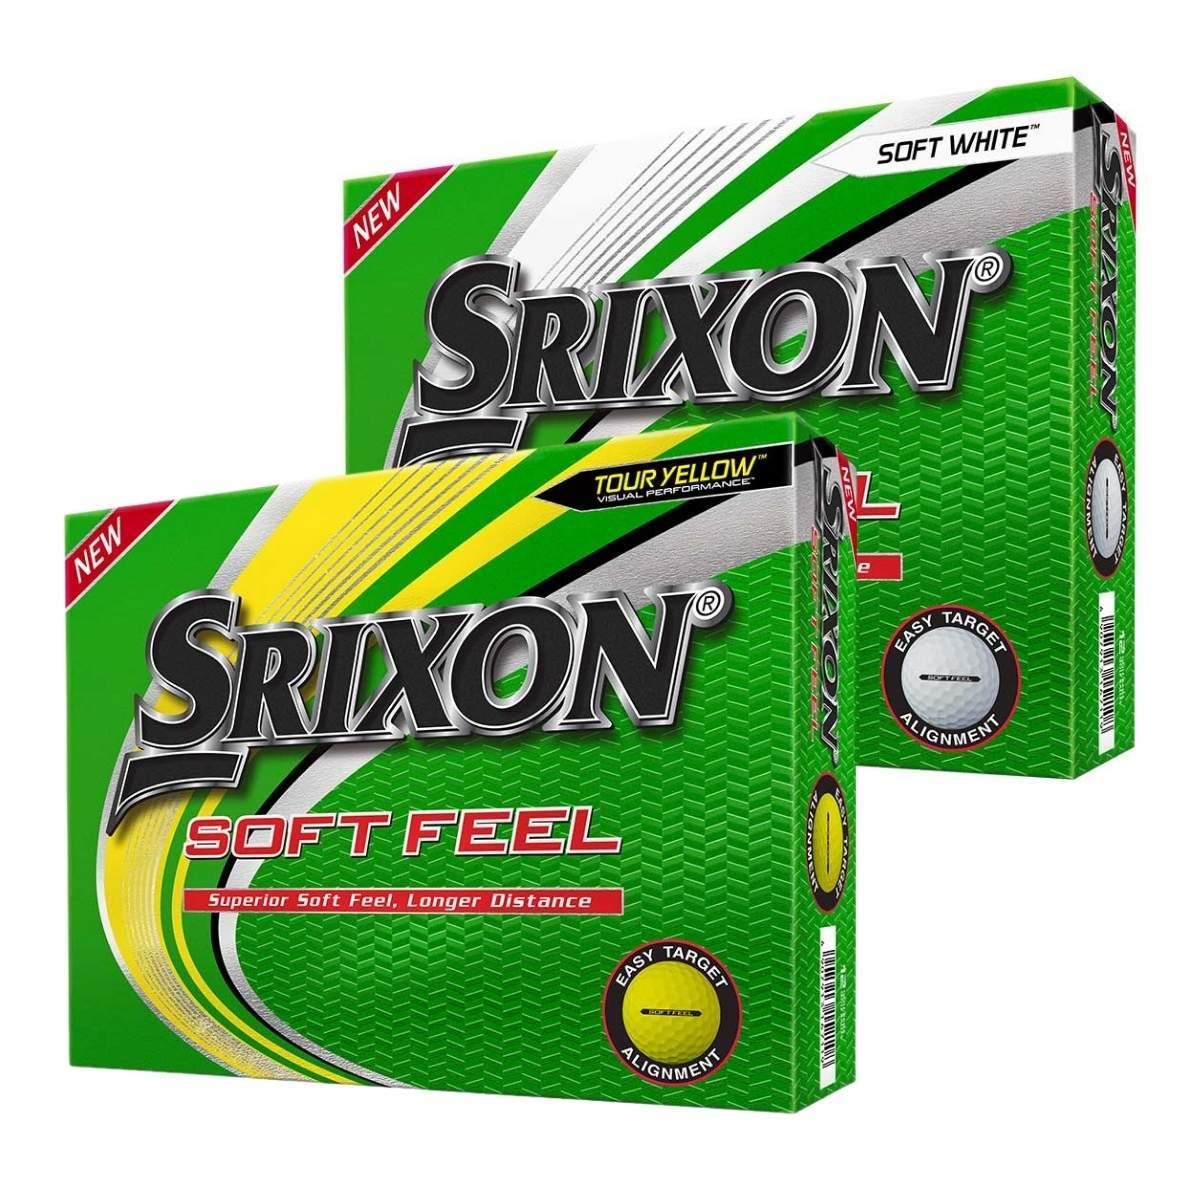 Srixon 2020 Soft Feel Golf Balls